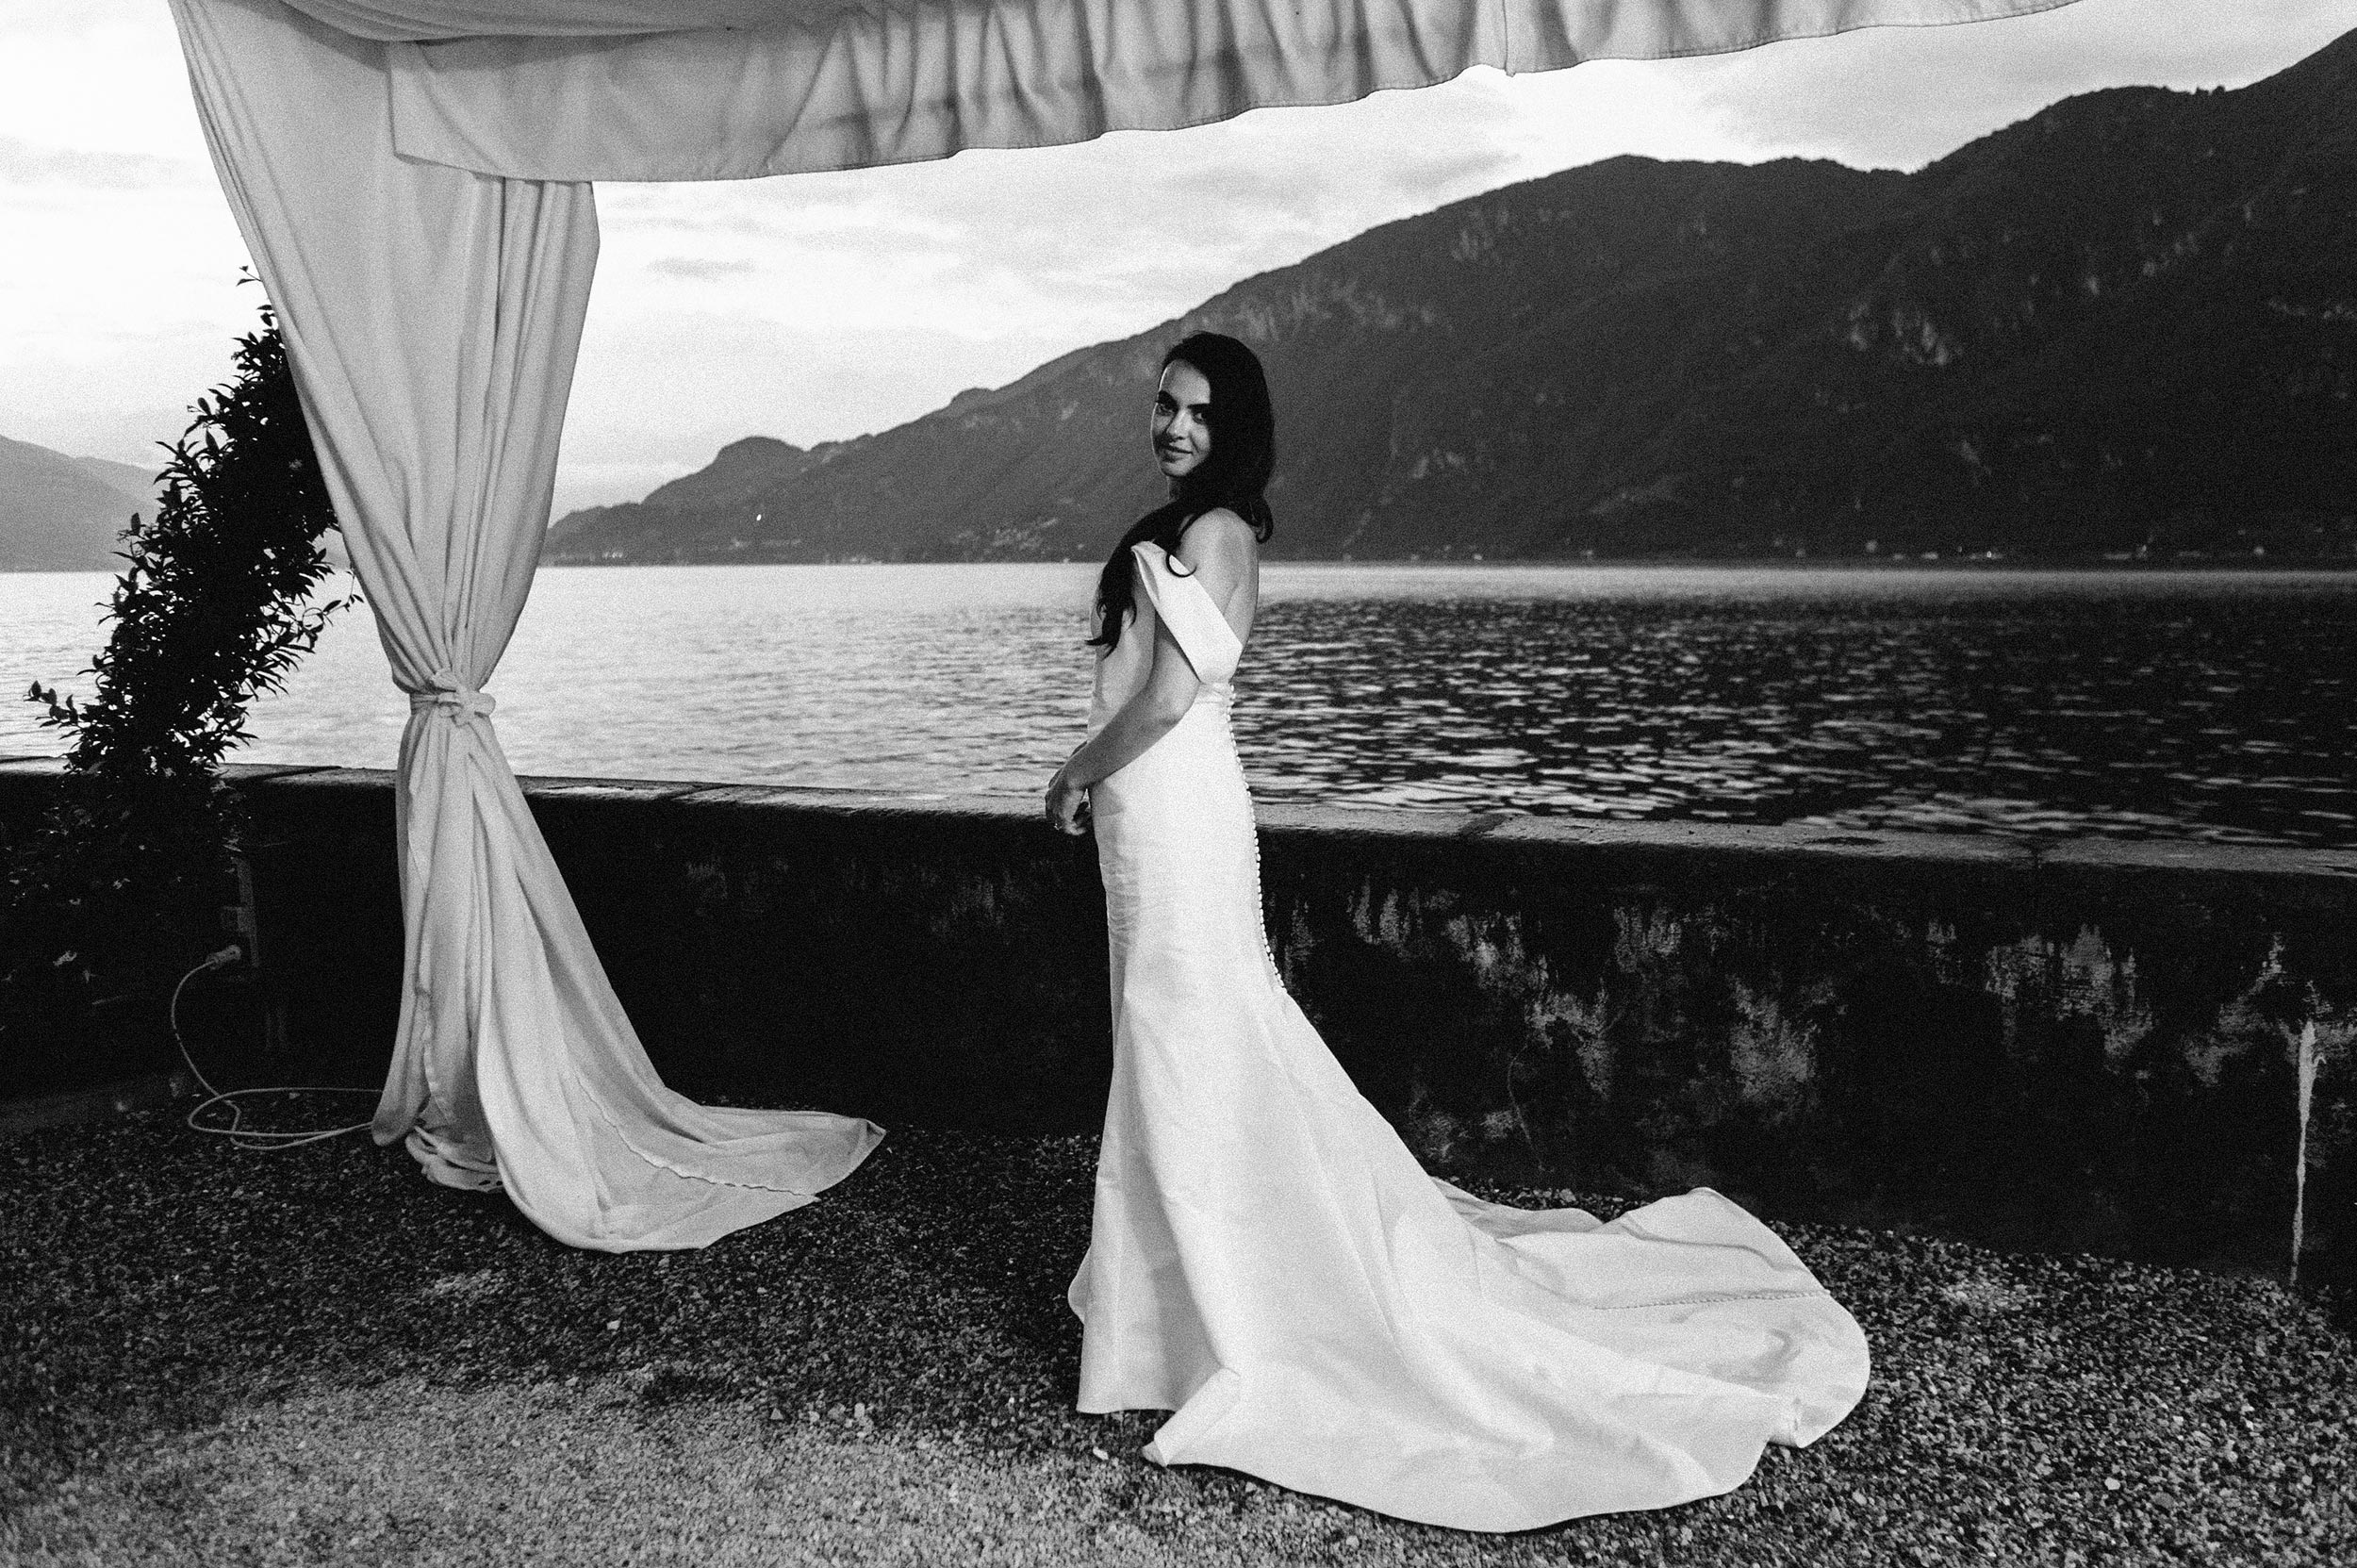 portrait-of-the-bride-and-curtain-lake-como-black-and-white-wedding-photography.jpg